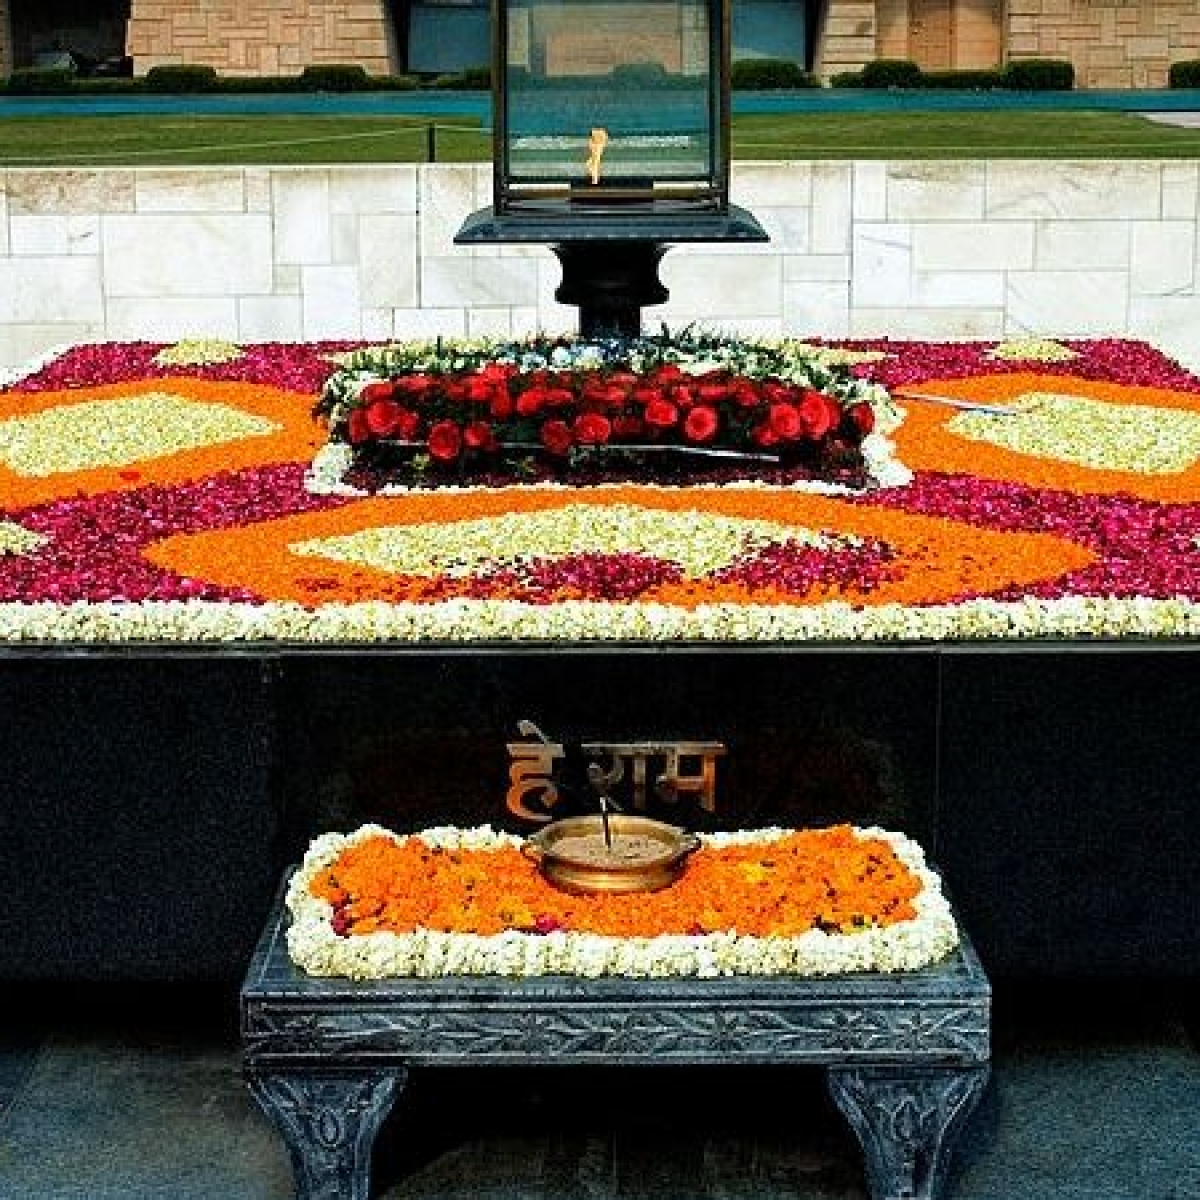 Martyrs' Day 2021: History, significance - All you need to know